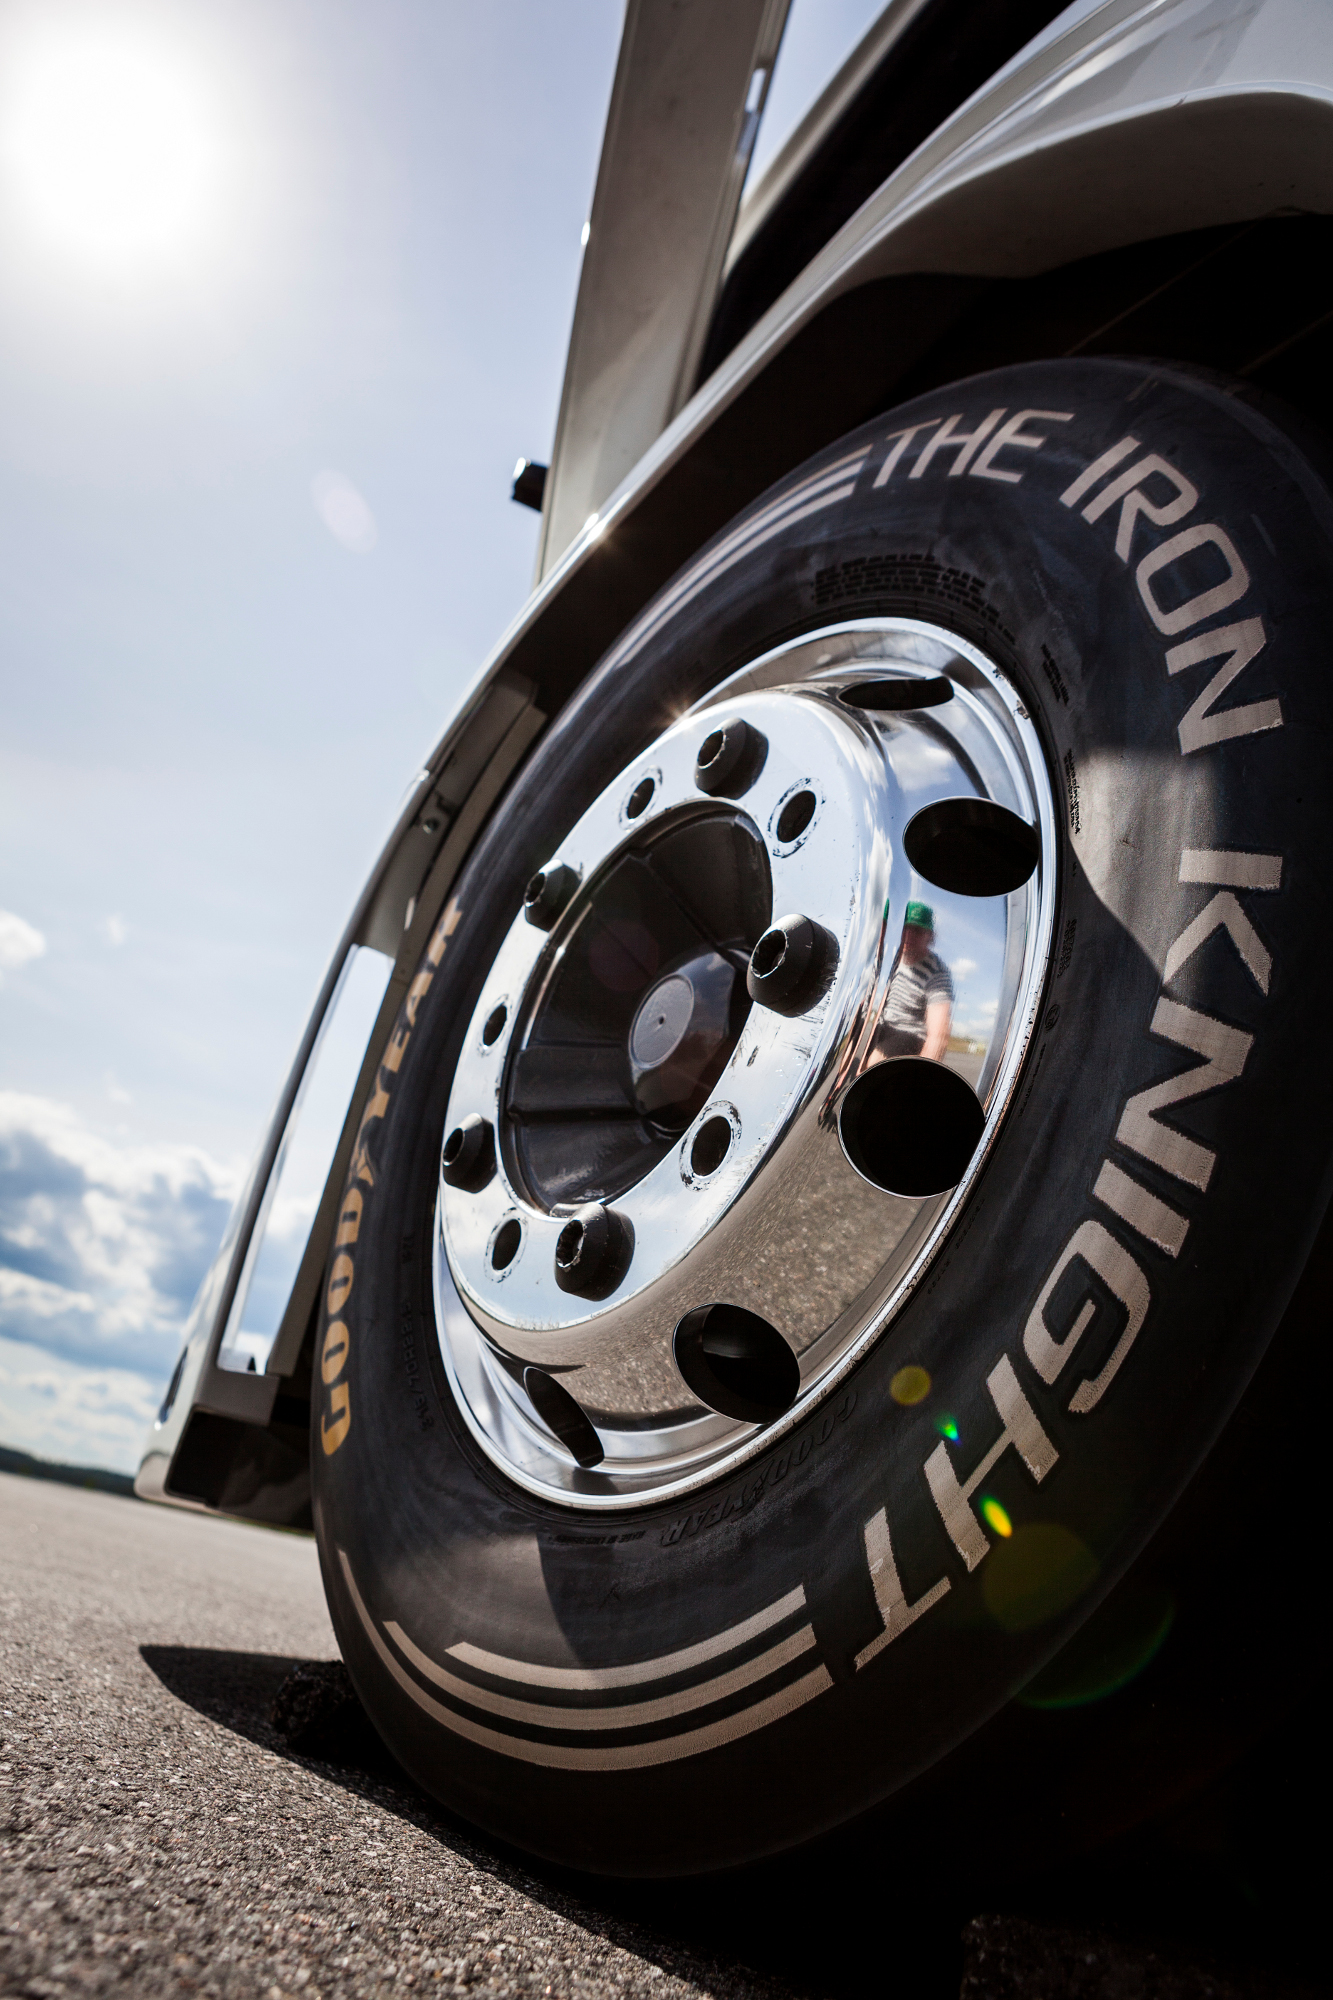 Goodyear Truck Tires - The Fastest in the World